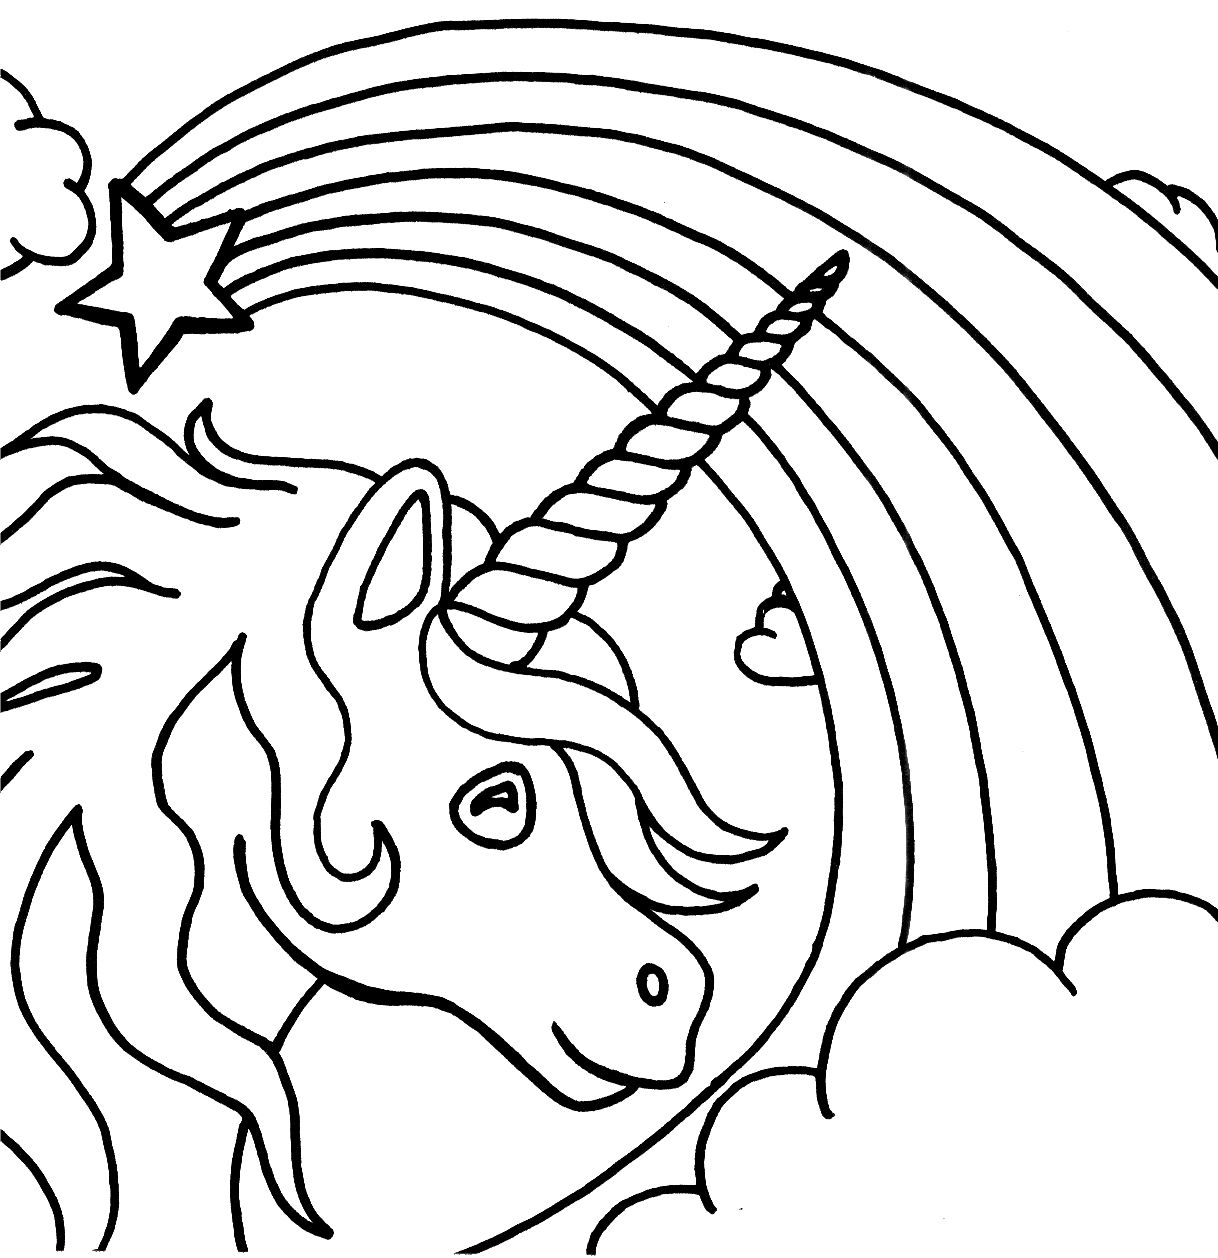 coloring pages free printable unicorn coloring pages for kids - Coloring Pages Unicorns Printable